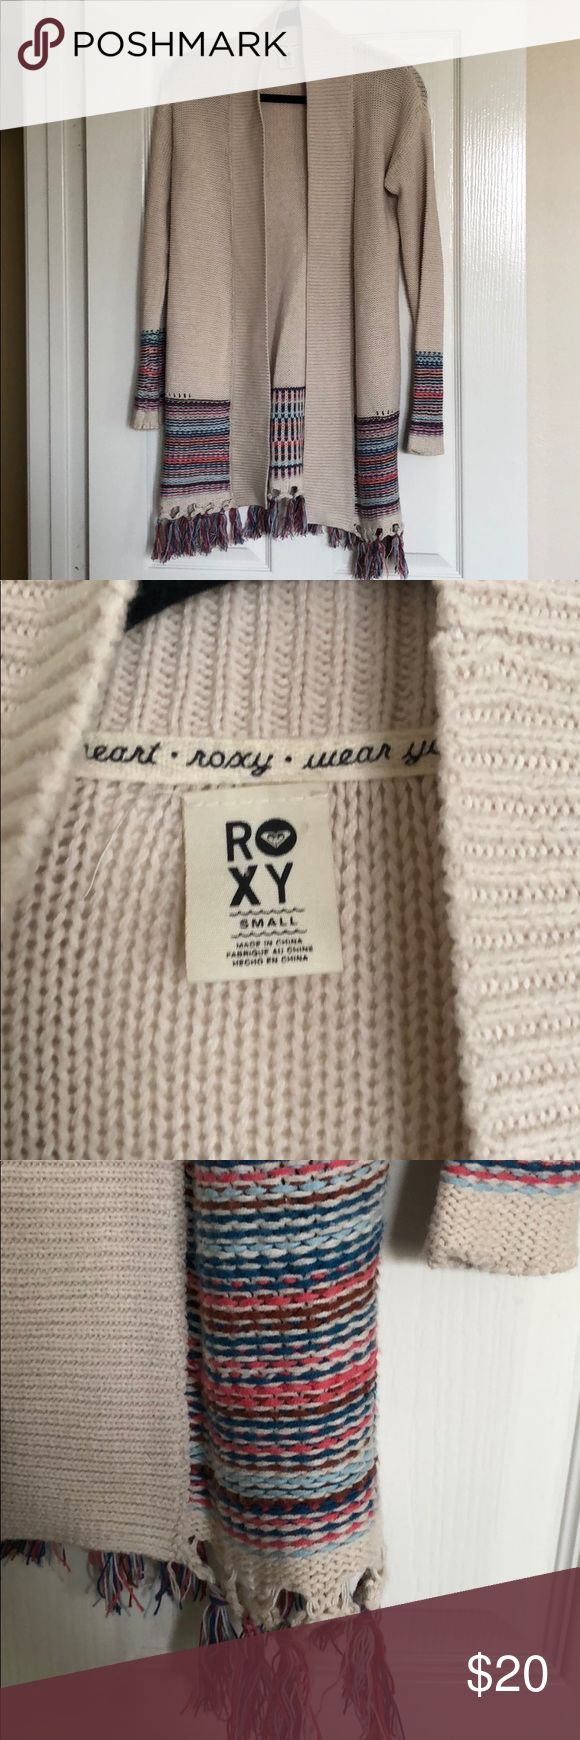 Roxy Cardigan size Small. Great condition! Roxy Cardigan, size Small. Cream with various colors at bottom and sleeves. Great condition. Roxy Sweaters Cardigans